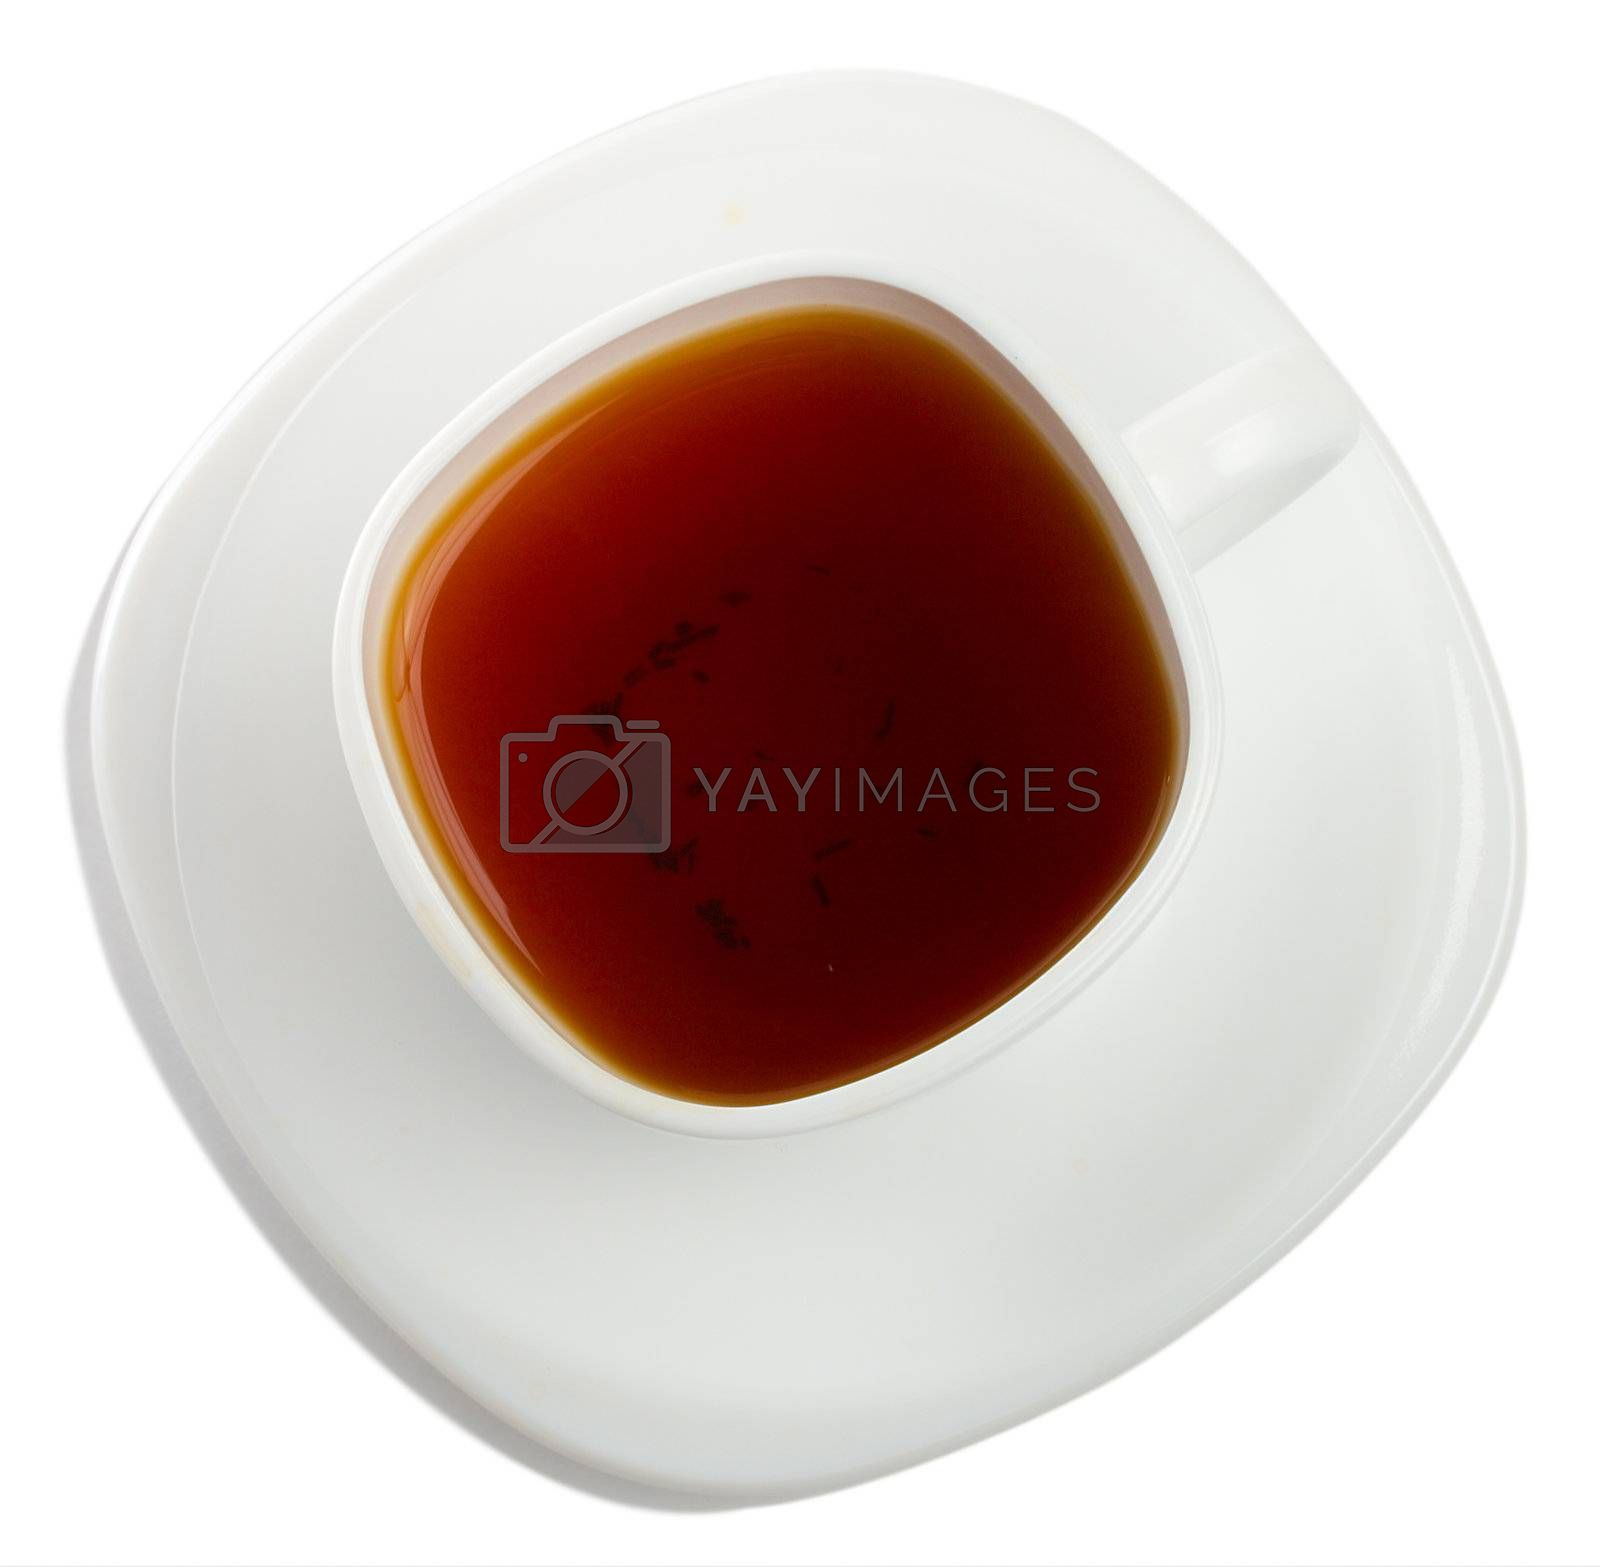 close-up cup of rooibos tea, isolated on white